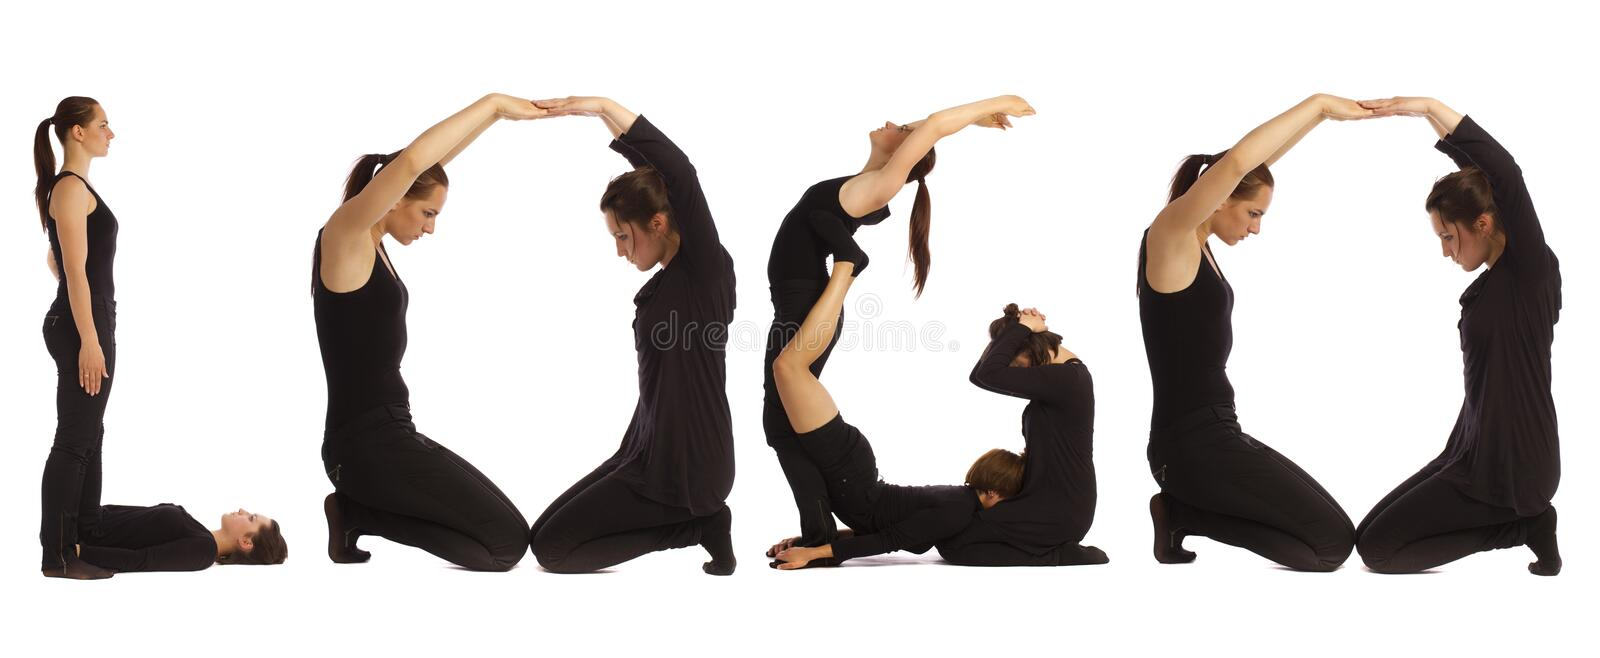 Download Black Dressed People Forming Word LOGO Stock Photo - Image: 92121882